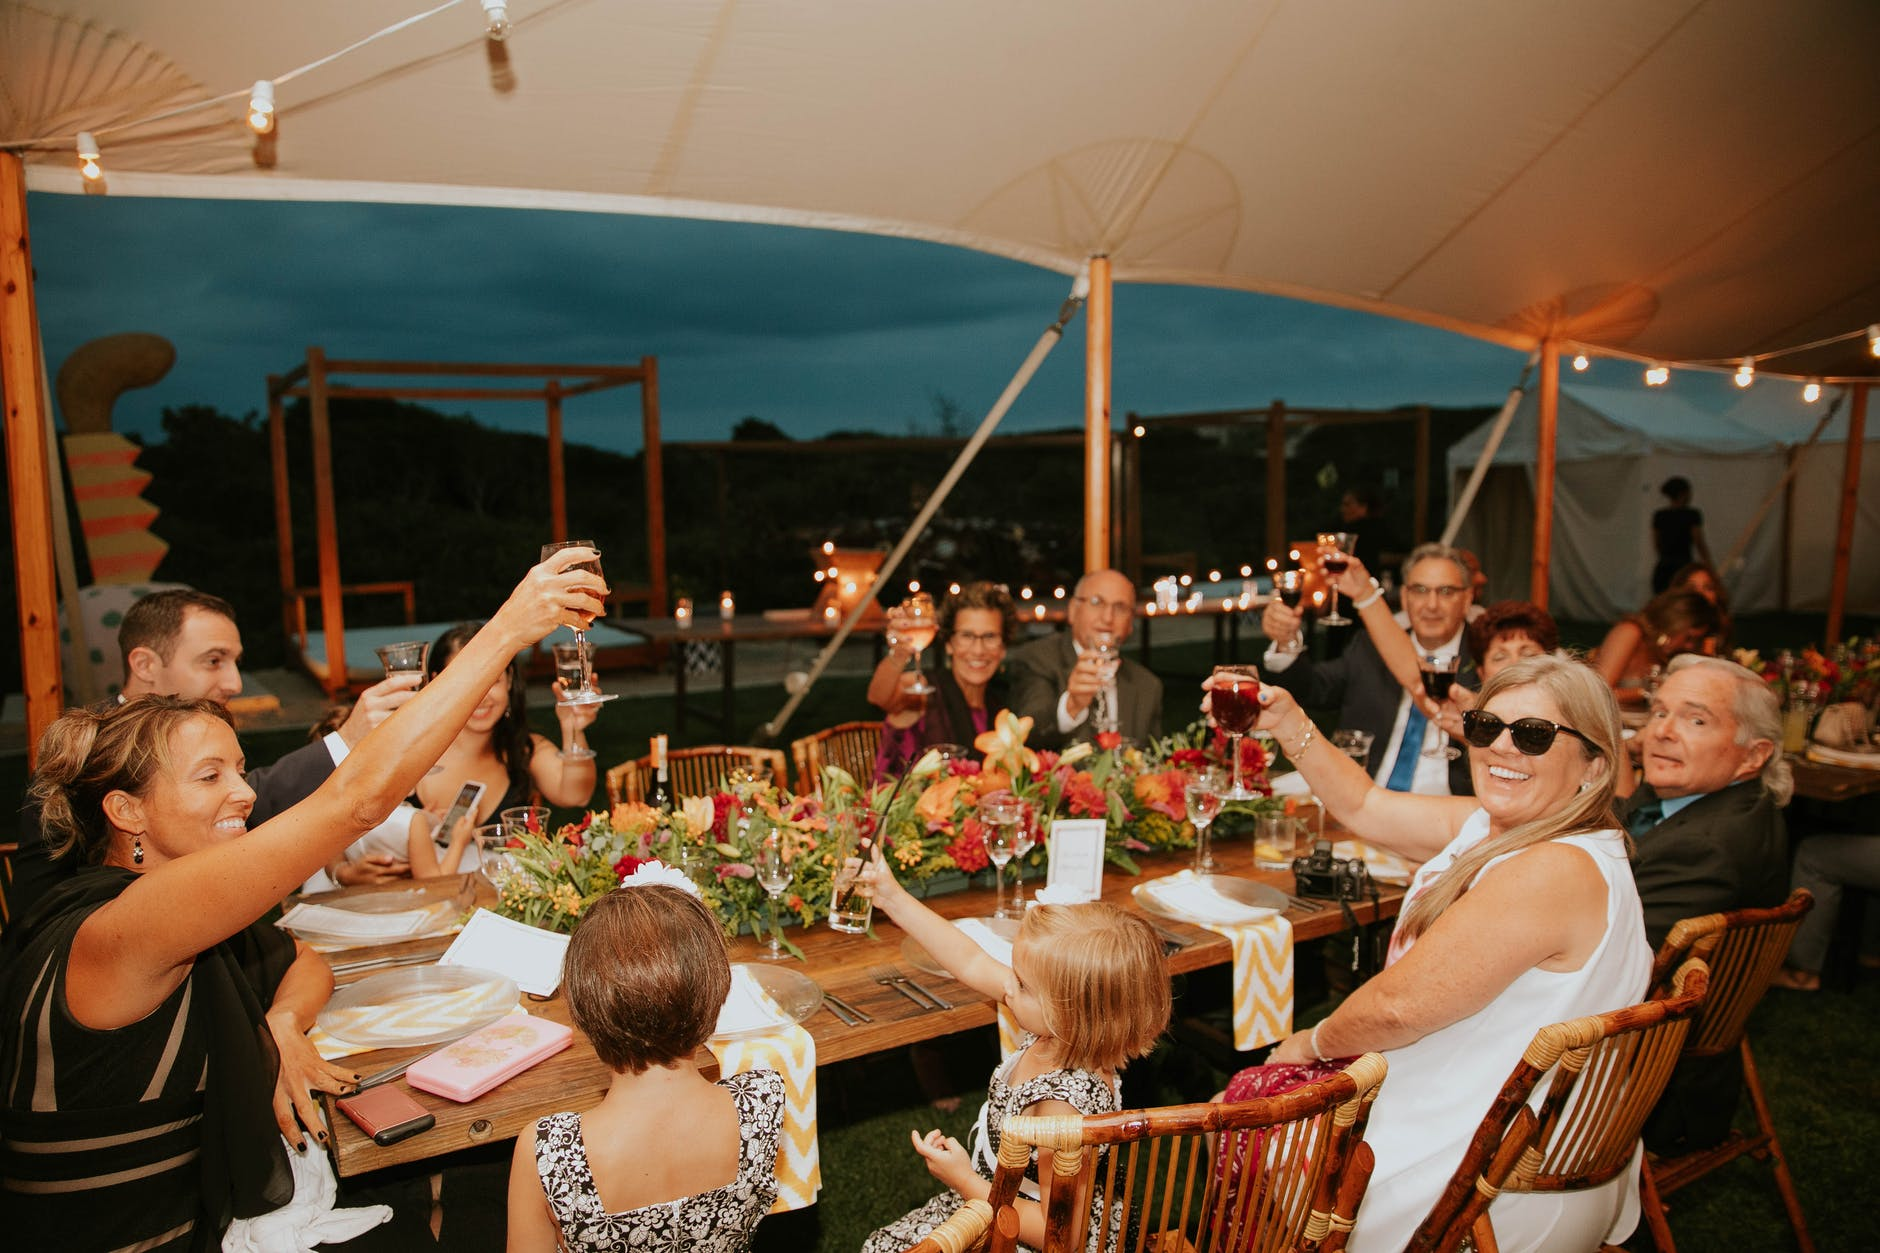 group of people raising their glasses to toast